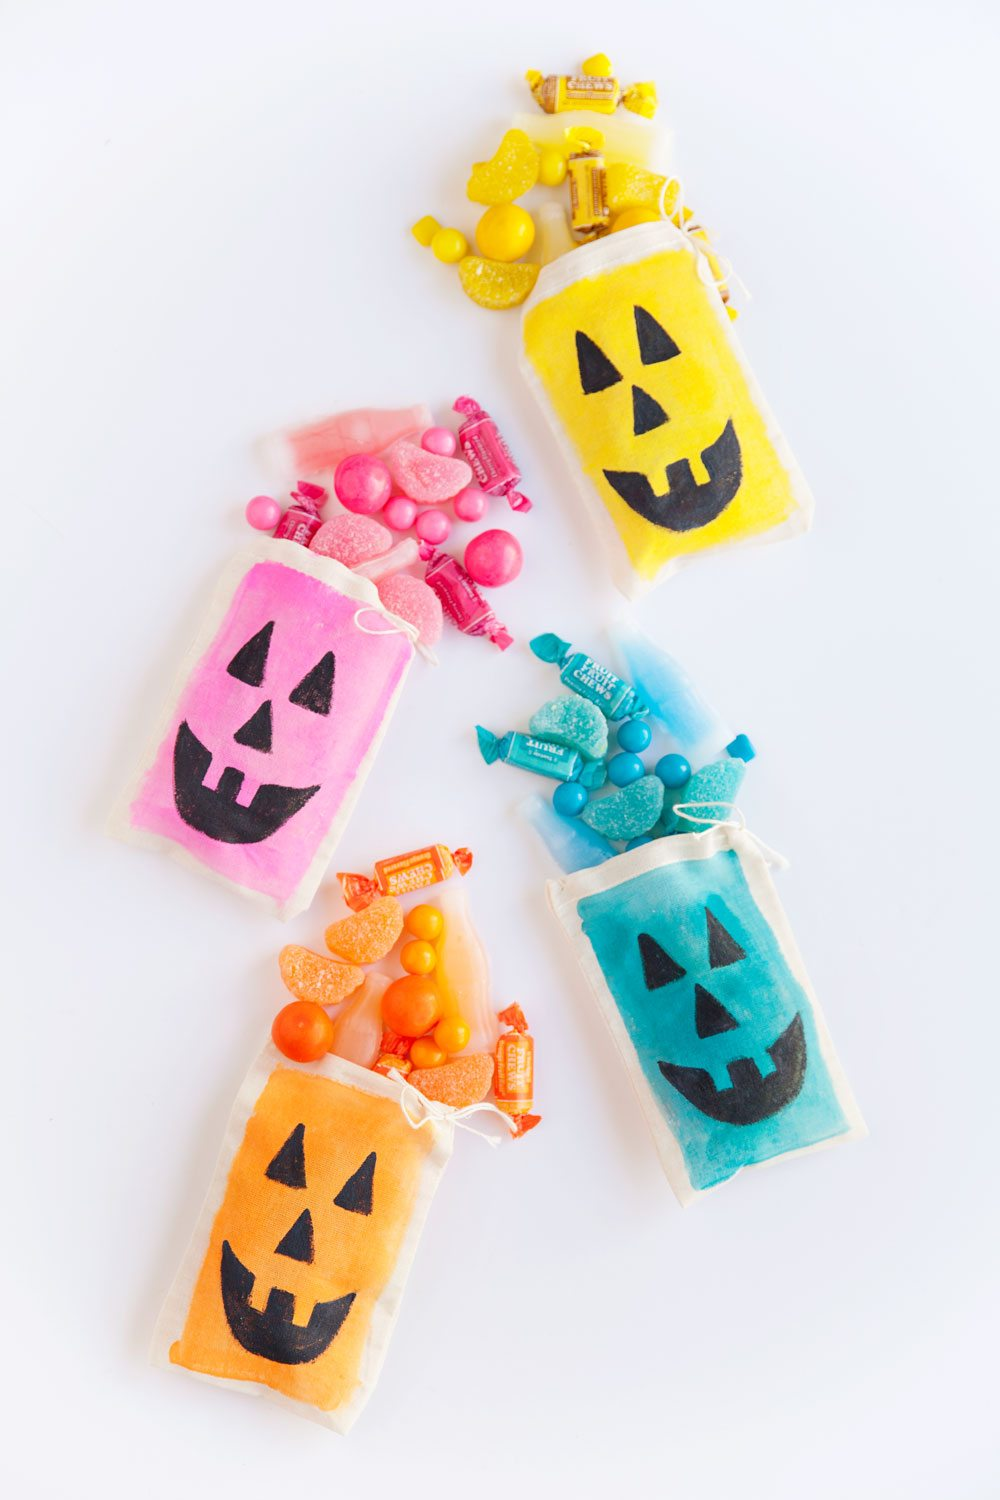 DIY Colorful Jack O' Lantern Treat Bags by @tellloveparty for @cydconverse